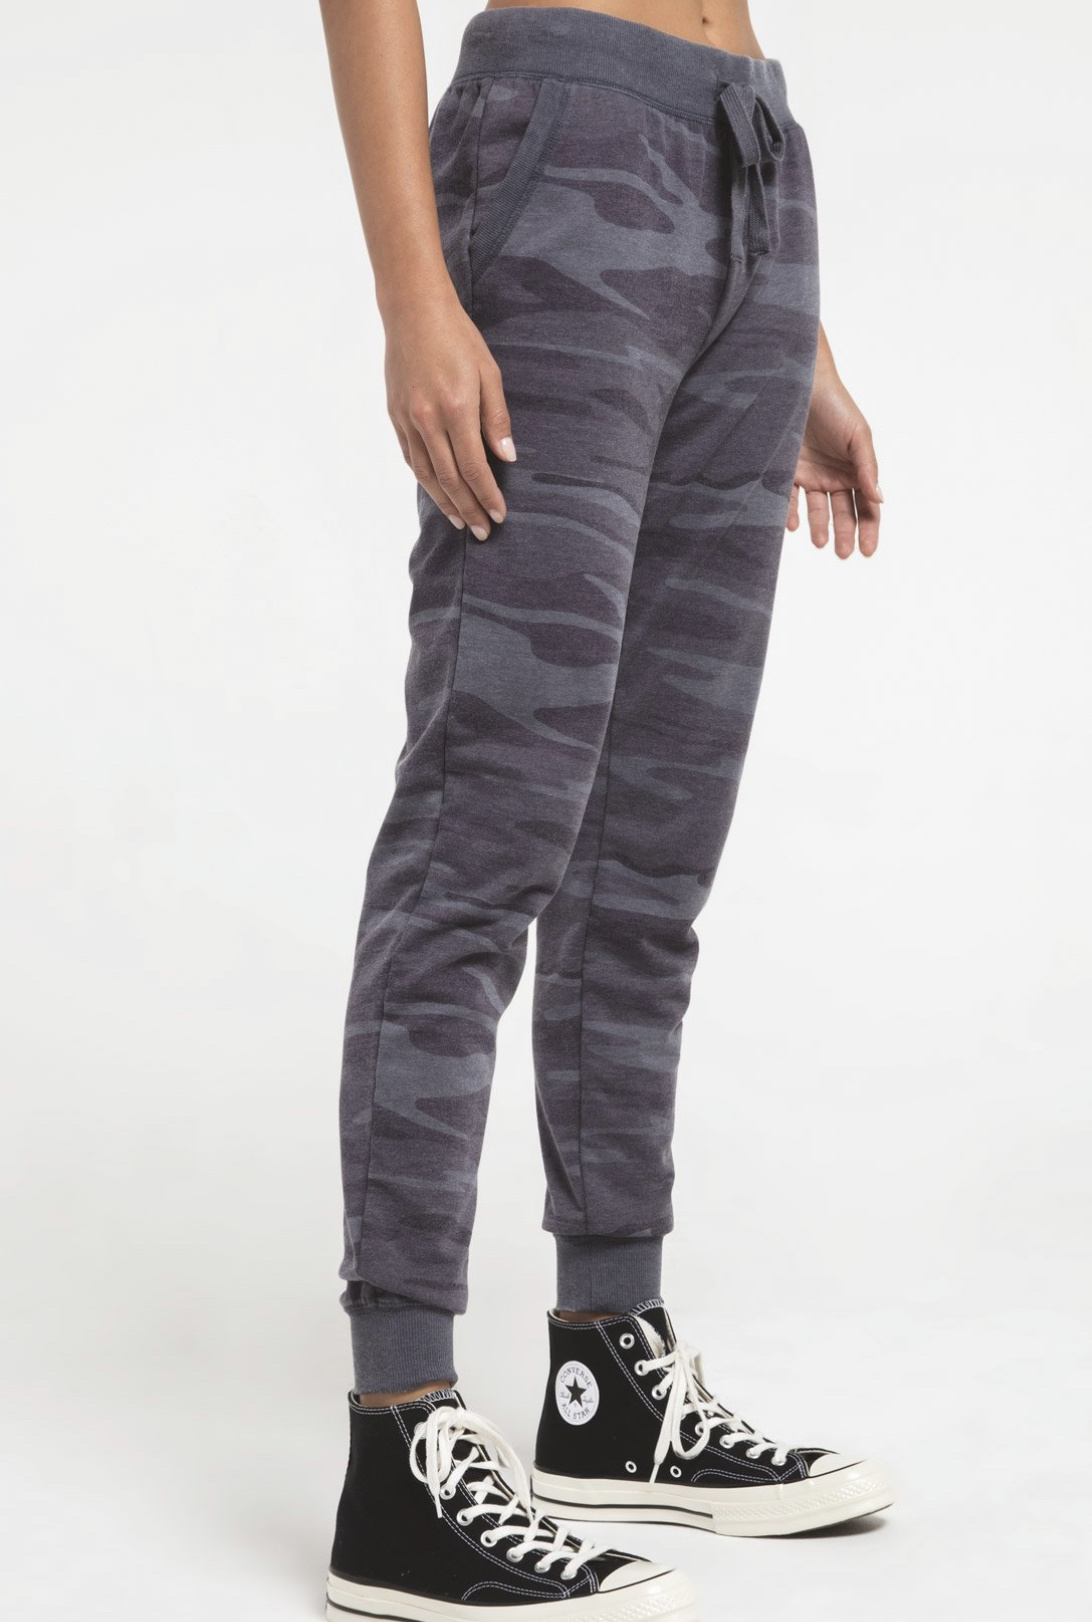 Z Supply Camo Joggers - DARK BLUE